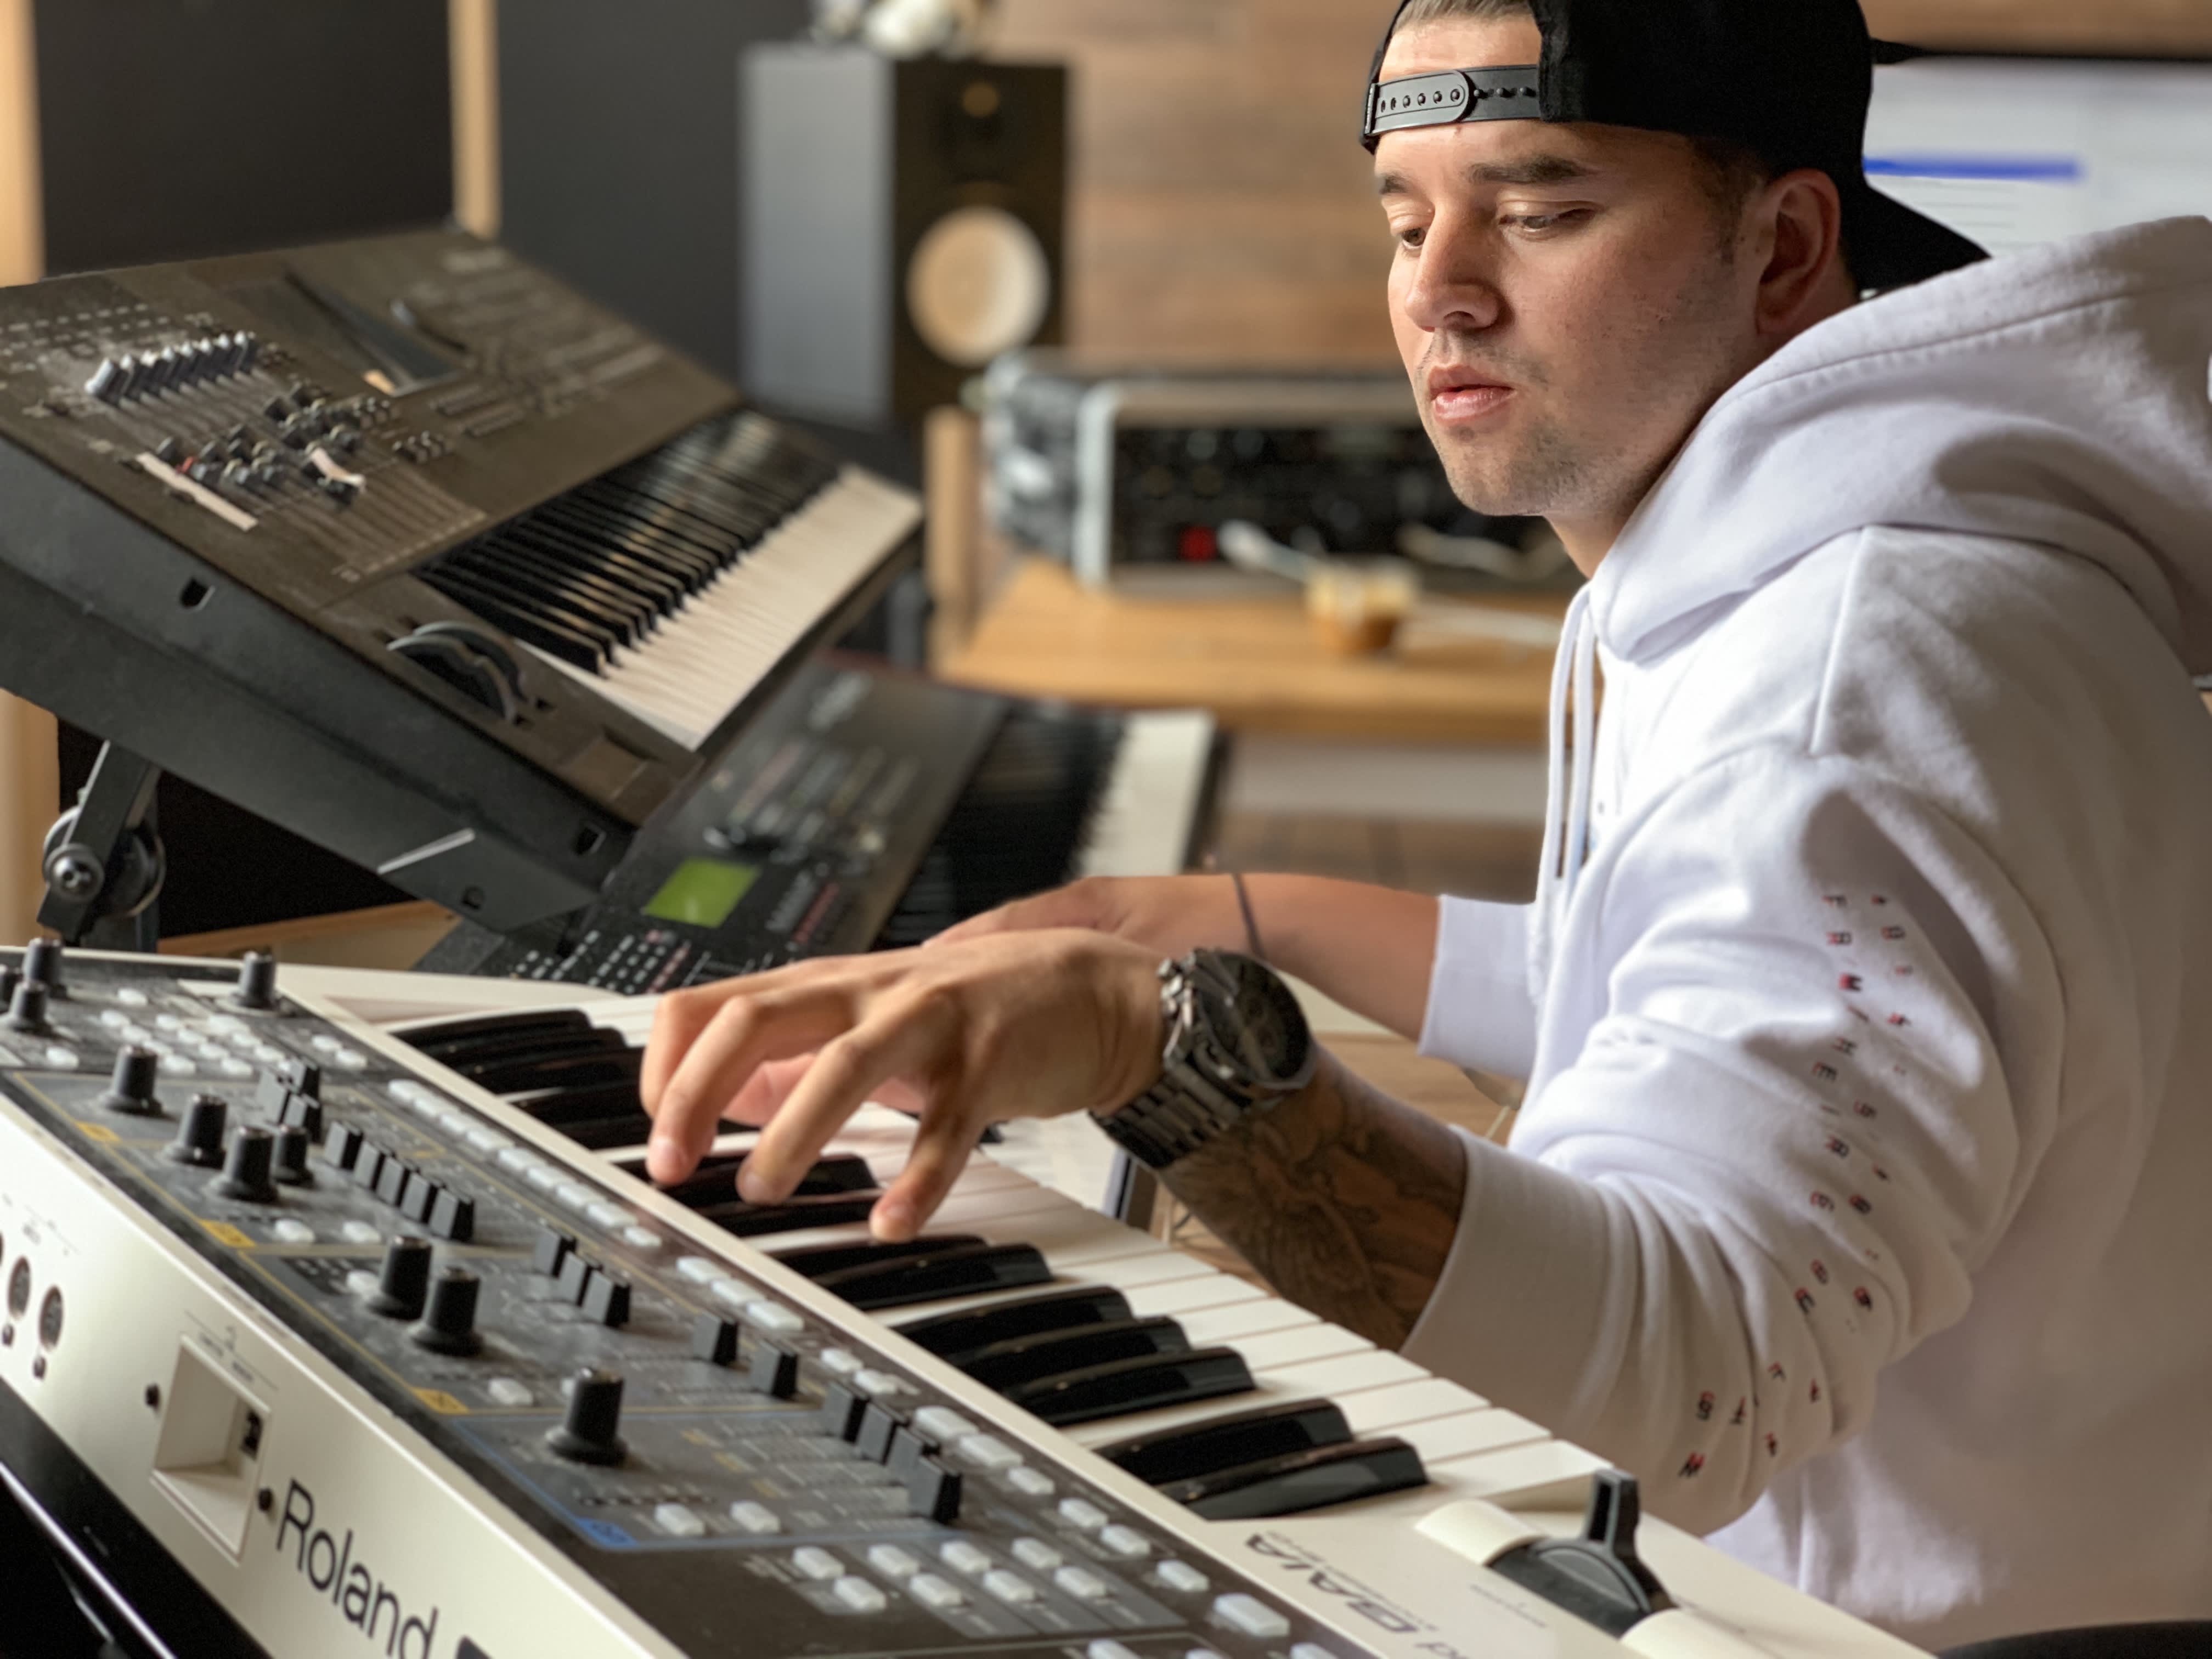 Selling your original melodic beats online can proffer $100K a year in your pocket